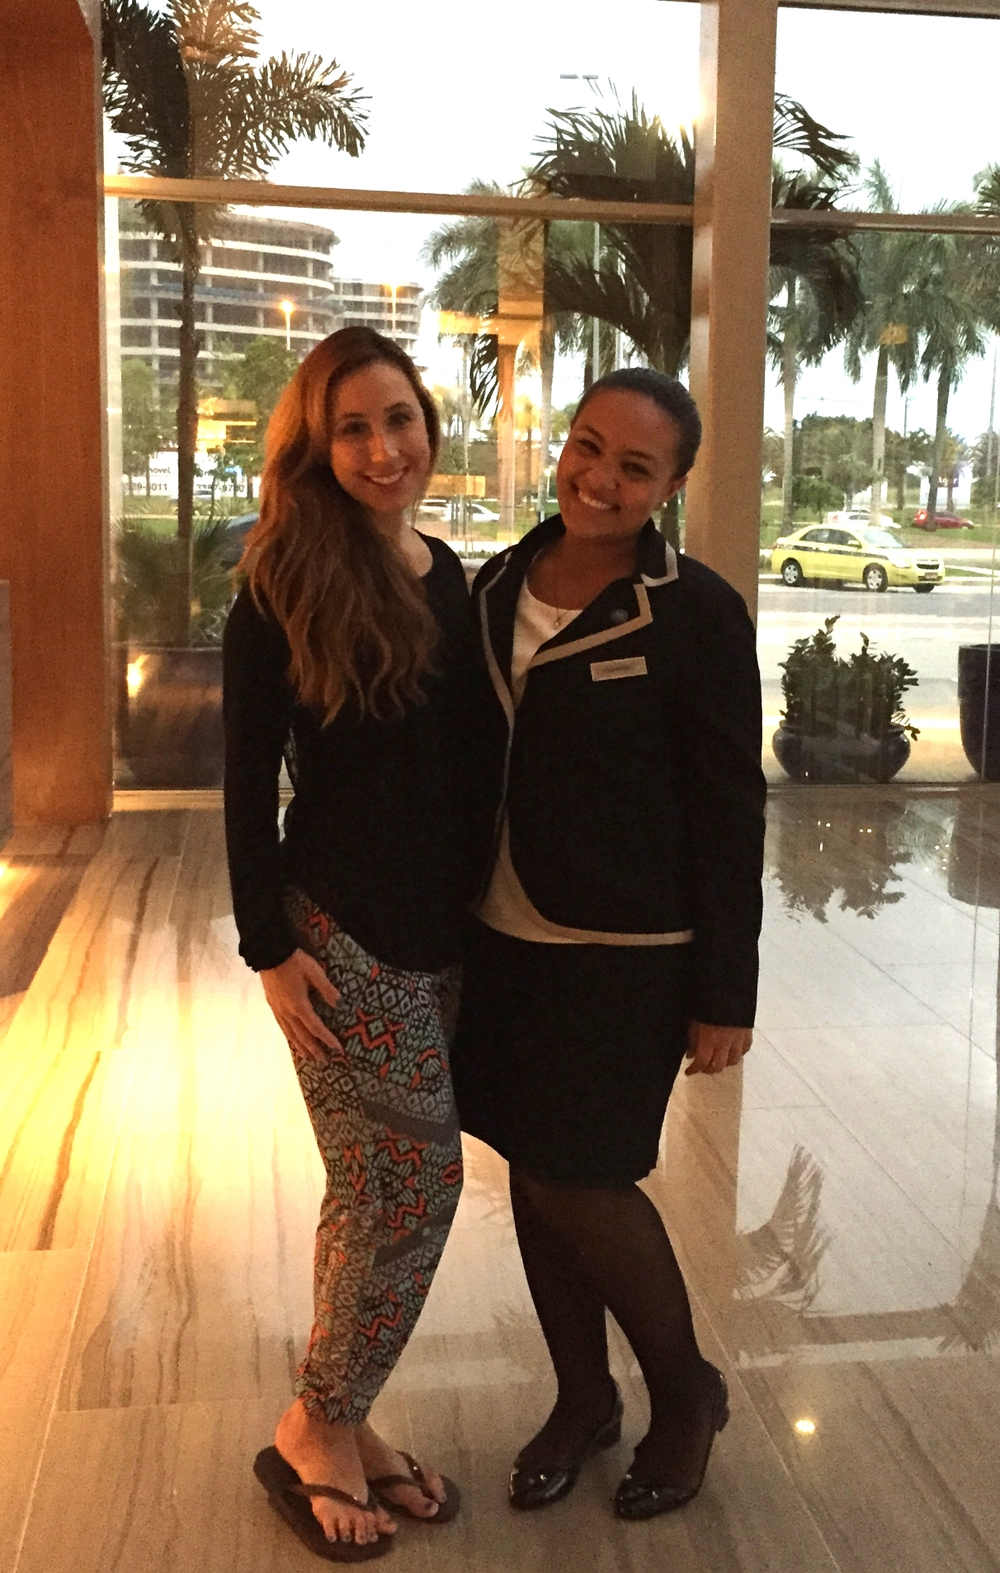 Myself (left) and Thamyris (right) the Hilton Barra's amazing concierge